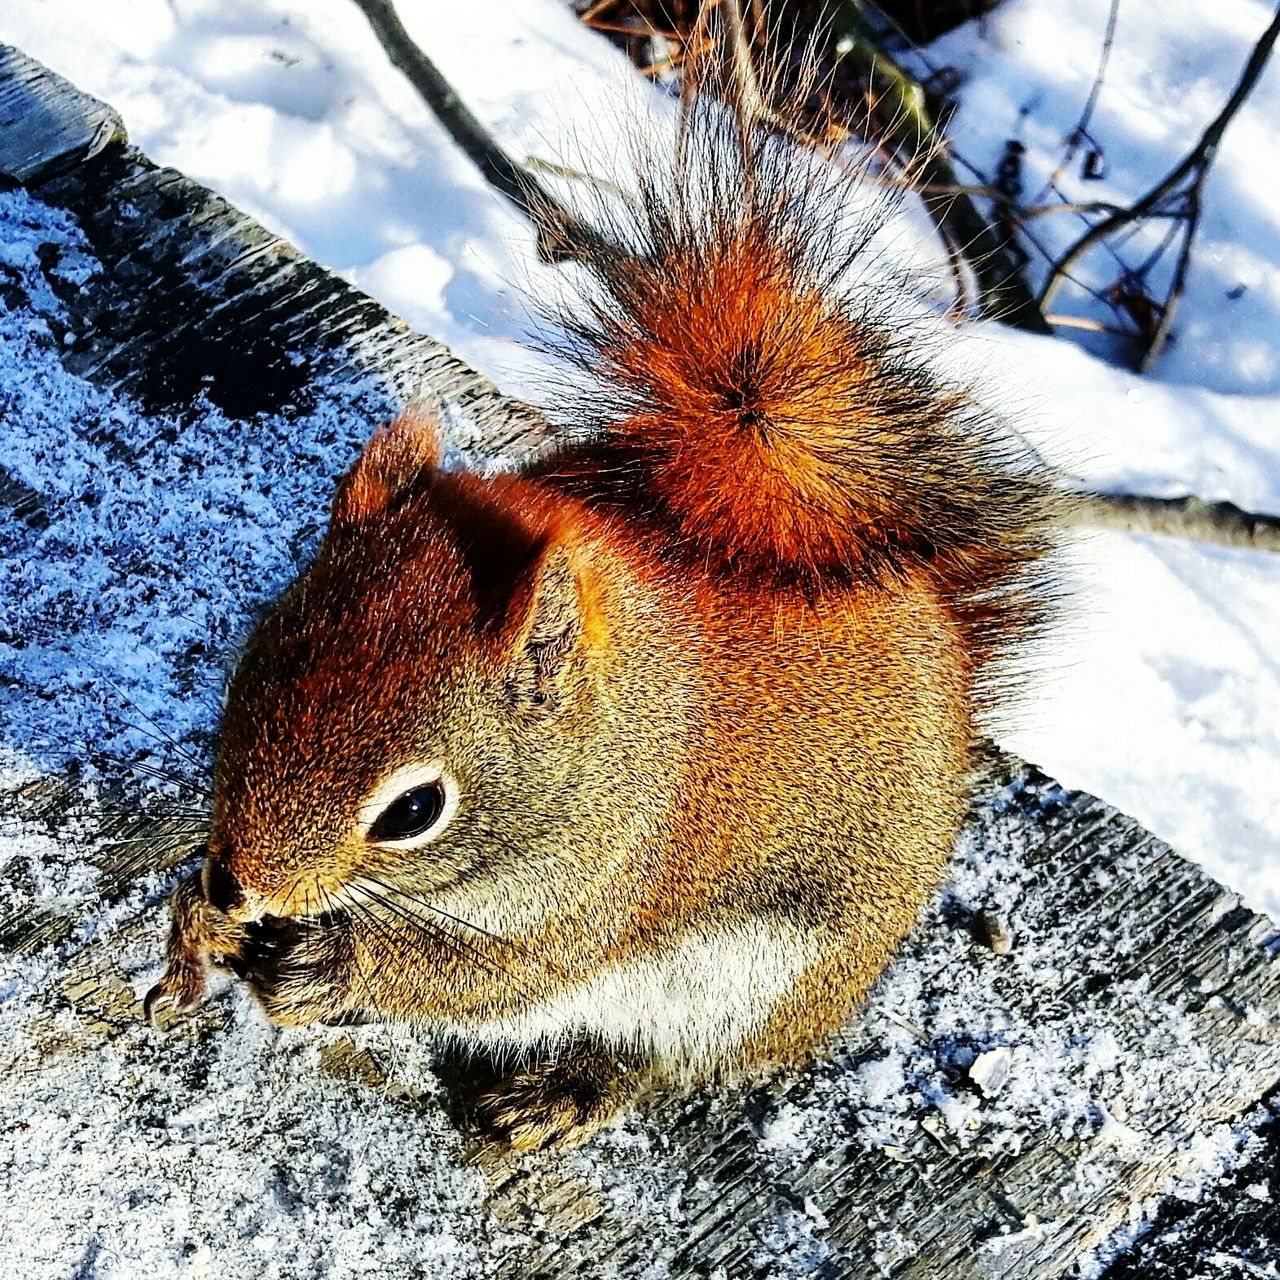 One Animal Animals In The Wild Nature Outdoors Close-up Wow Shot Winter Cinlb Beauty In Nature Nature Naturephotography Granby Squirrel Squirrel Closeup Squirrel Eating Squirrel Photography Squirrellife Squirrelporn  écureuil Ecureuil Roux Roux